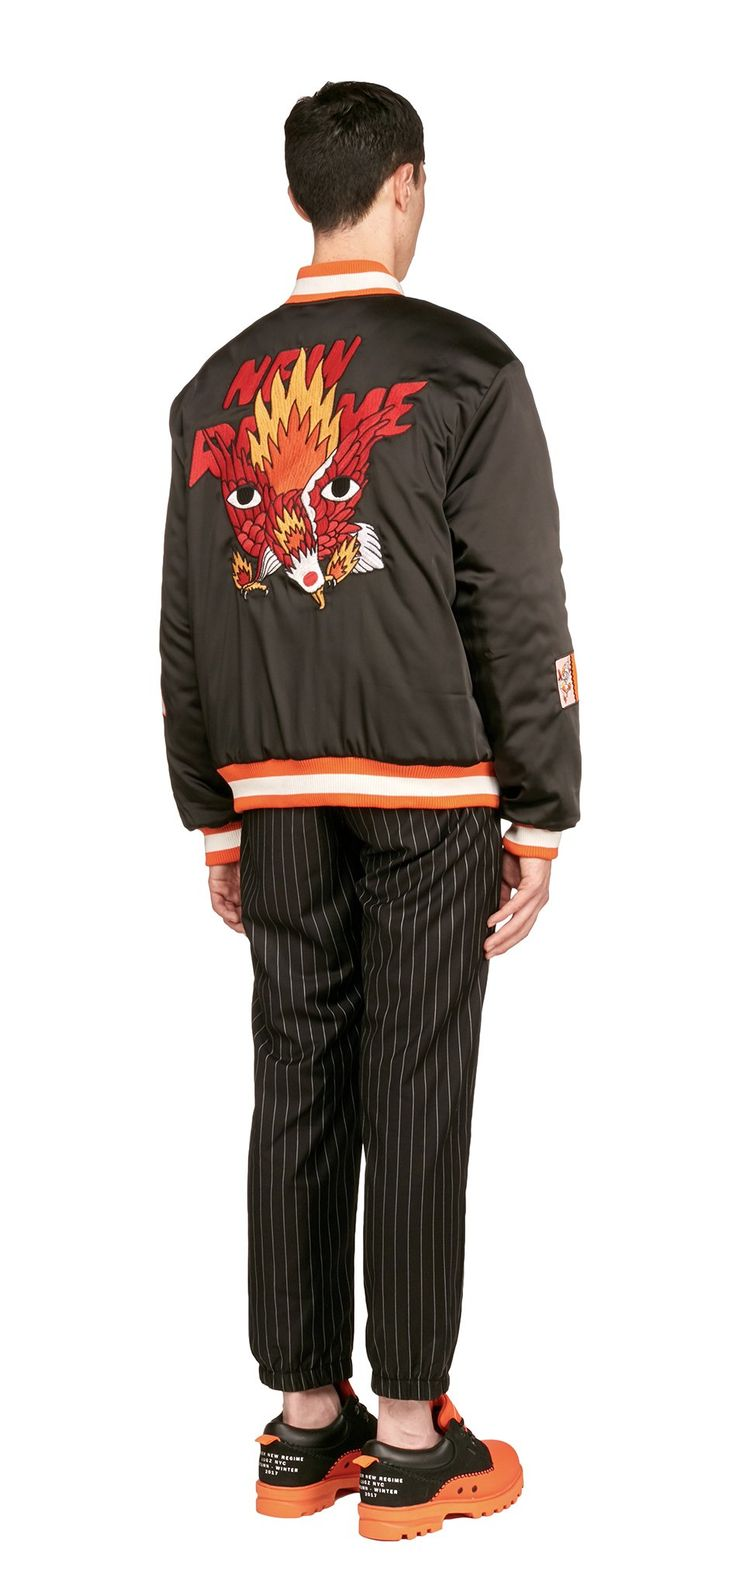 Ricardo Cavolo X Atelier New Regime Guardian Eagle Bomber Jacket (Black) / Made of smooth satin, this medium weight bomber jacket featuresthe Guardian Eagle collab artwork embroidered at the back,depicting the strength, freedom and inspiration that the eagle is known to represent. #ricardocavolo